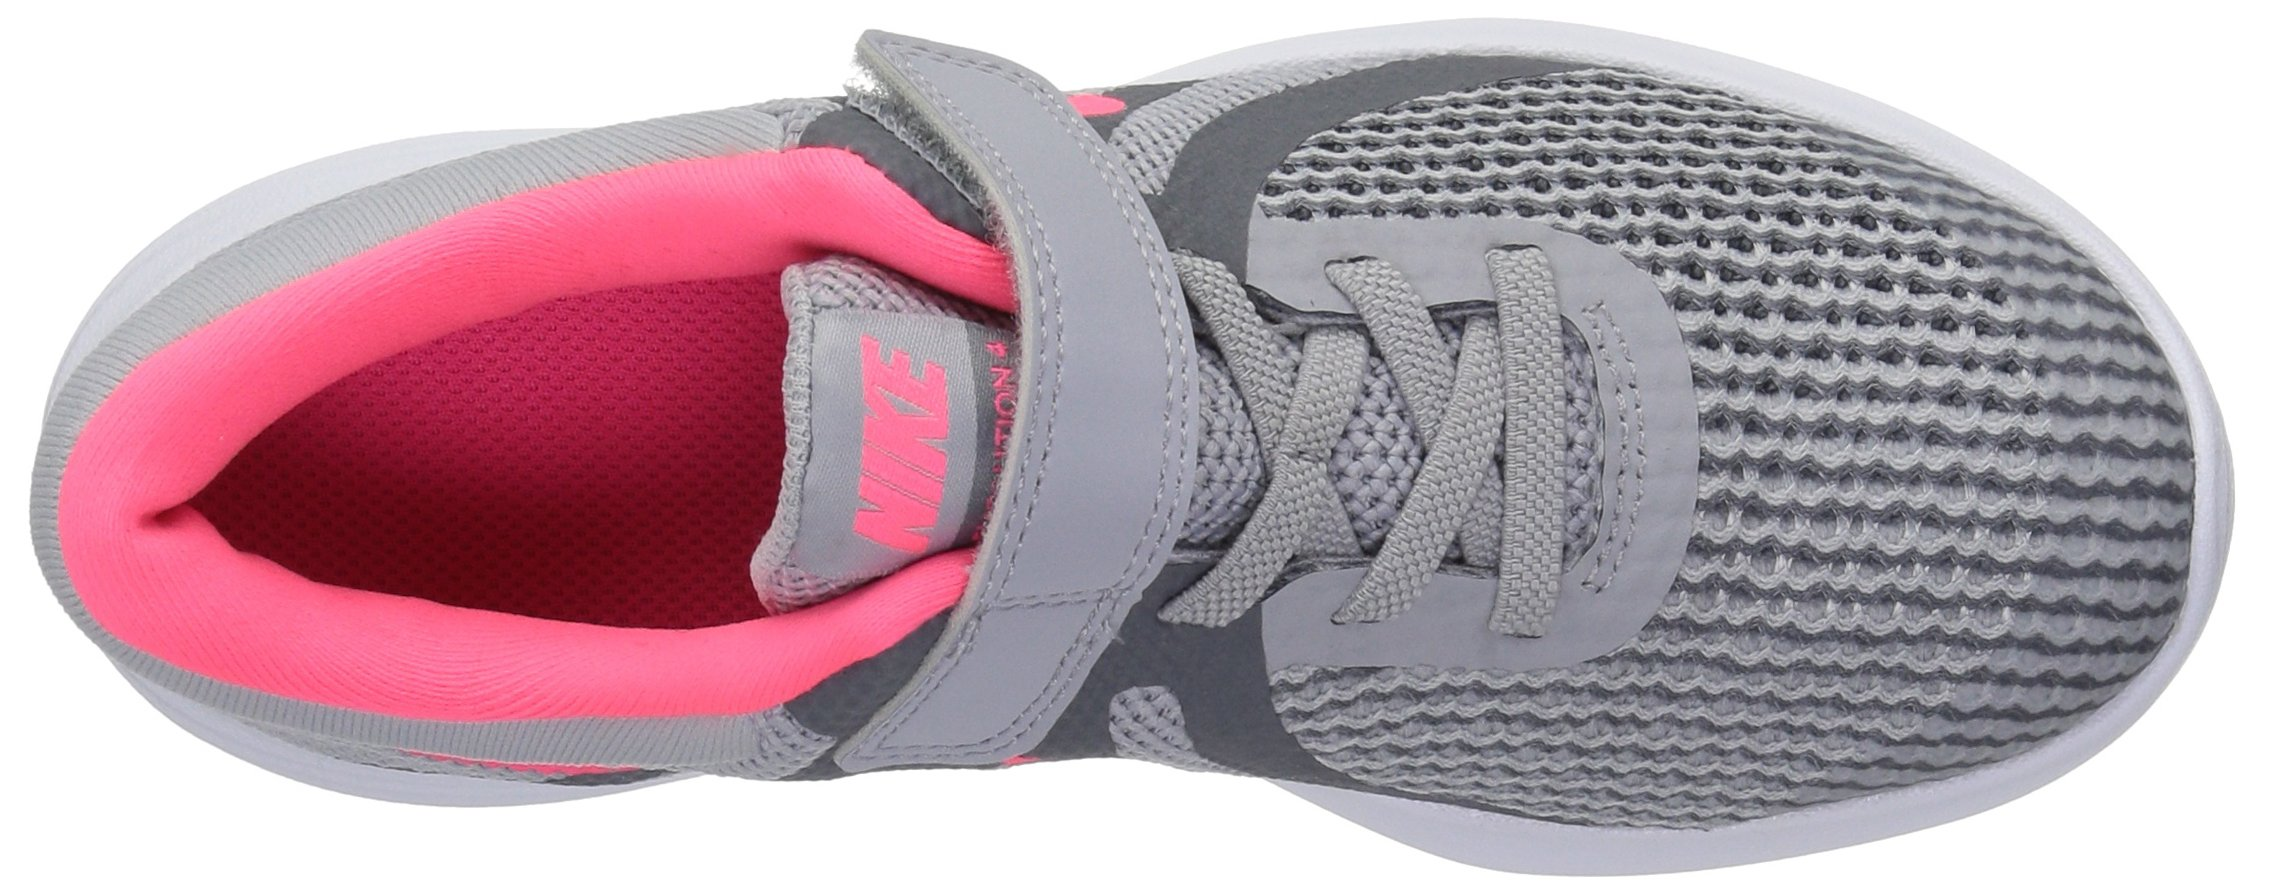 Nike Girls' Revolution 4 (PSV) Running Shoe, Wolf Racer Pink-Cool Grey-White, 3Y Child US Little Kid by Nike (Image #7)